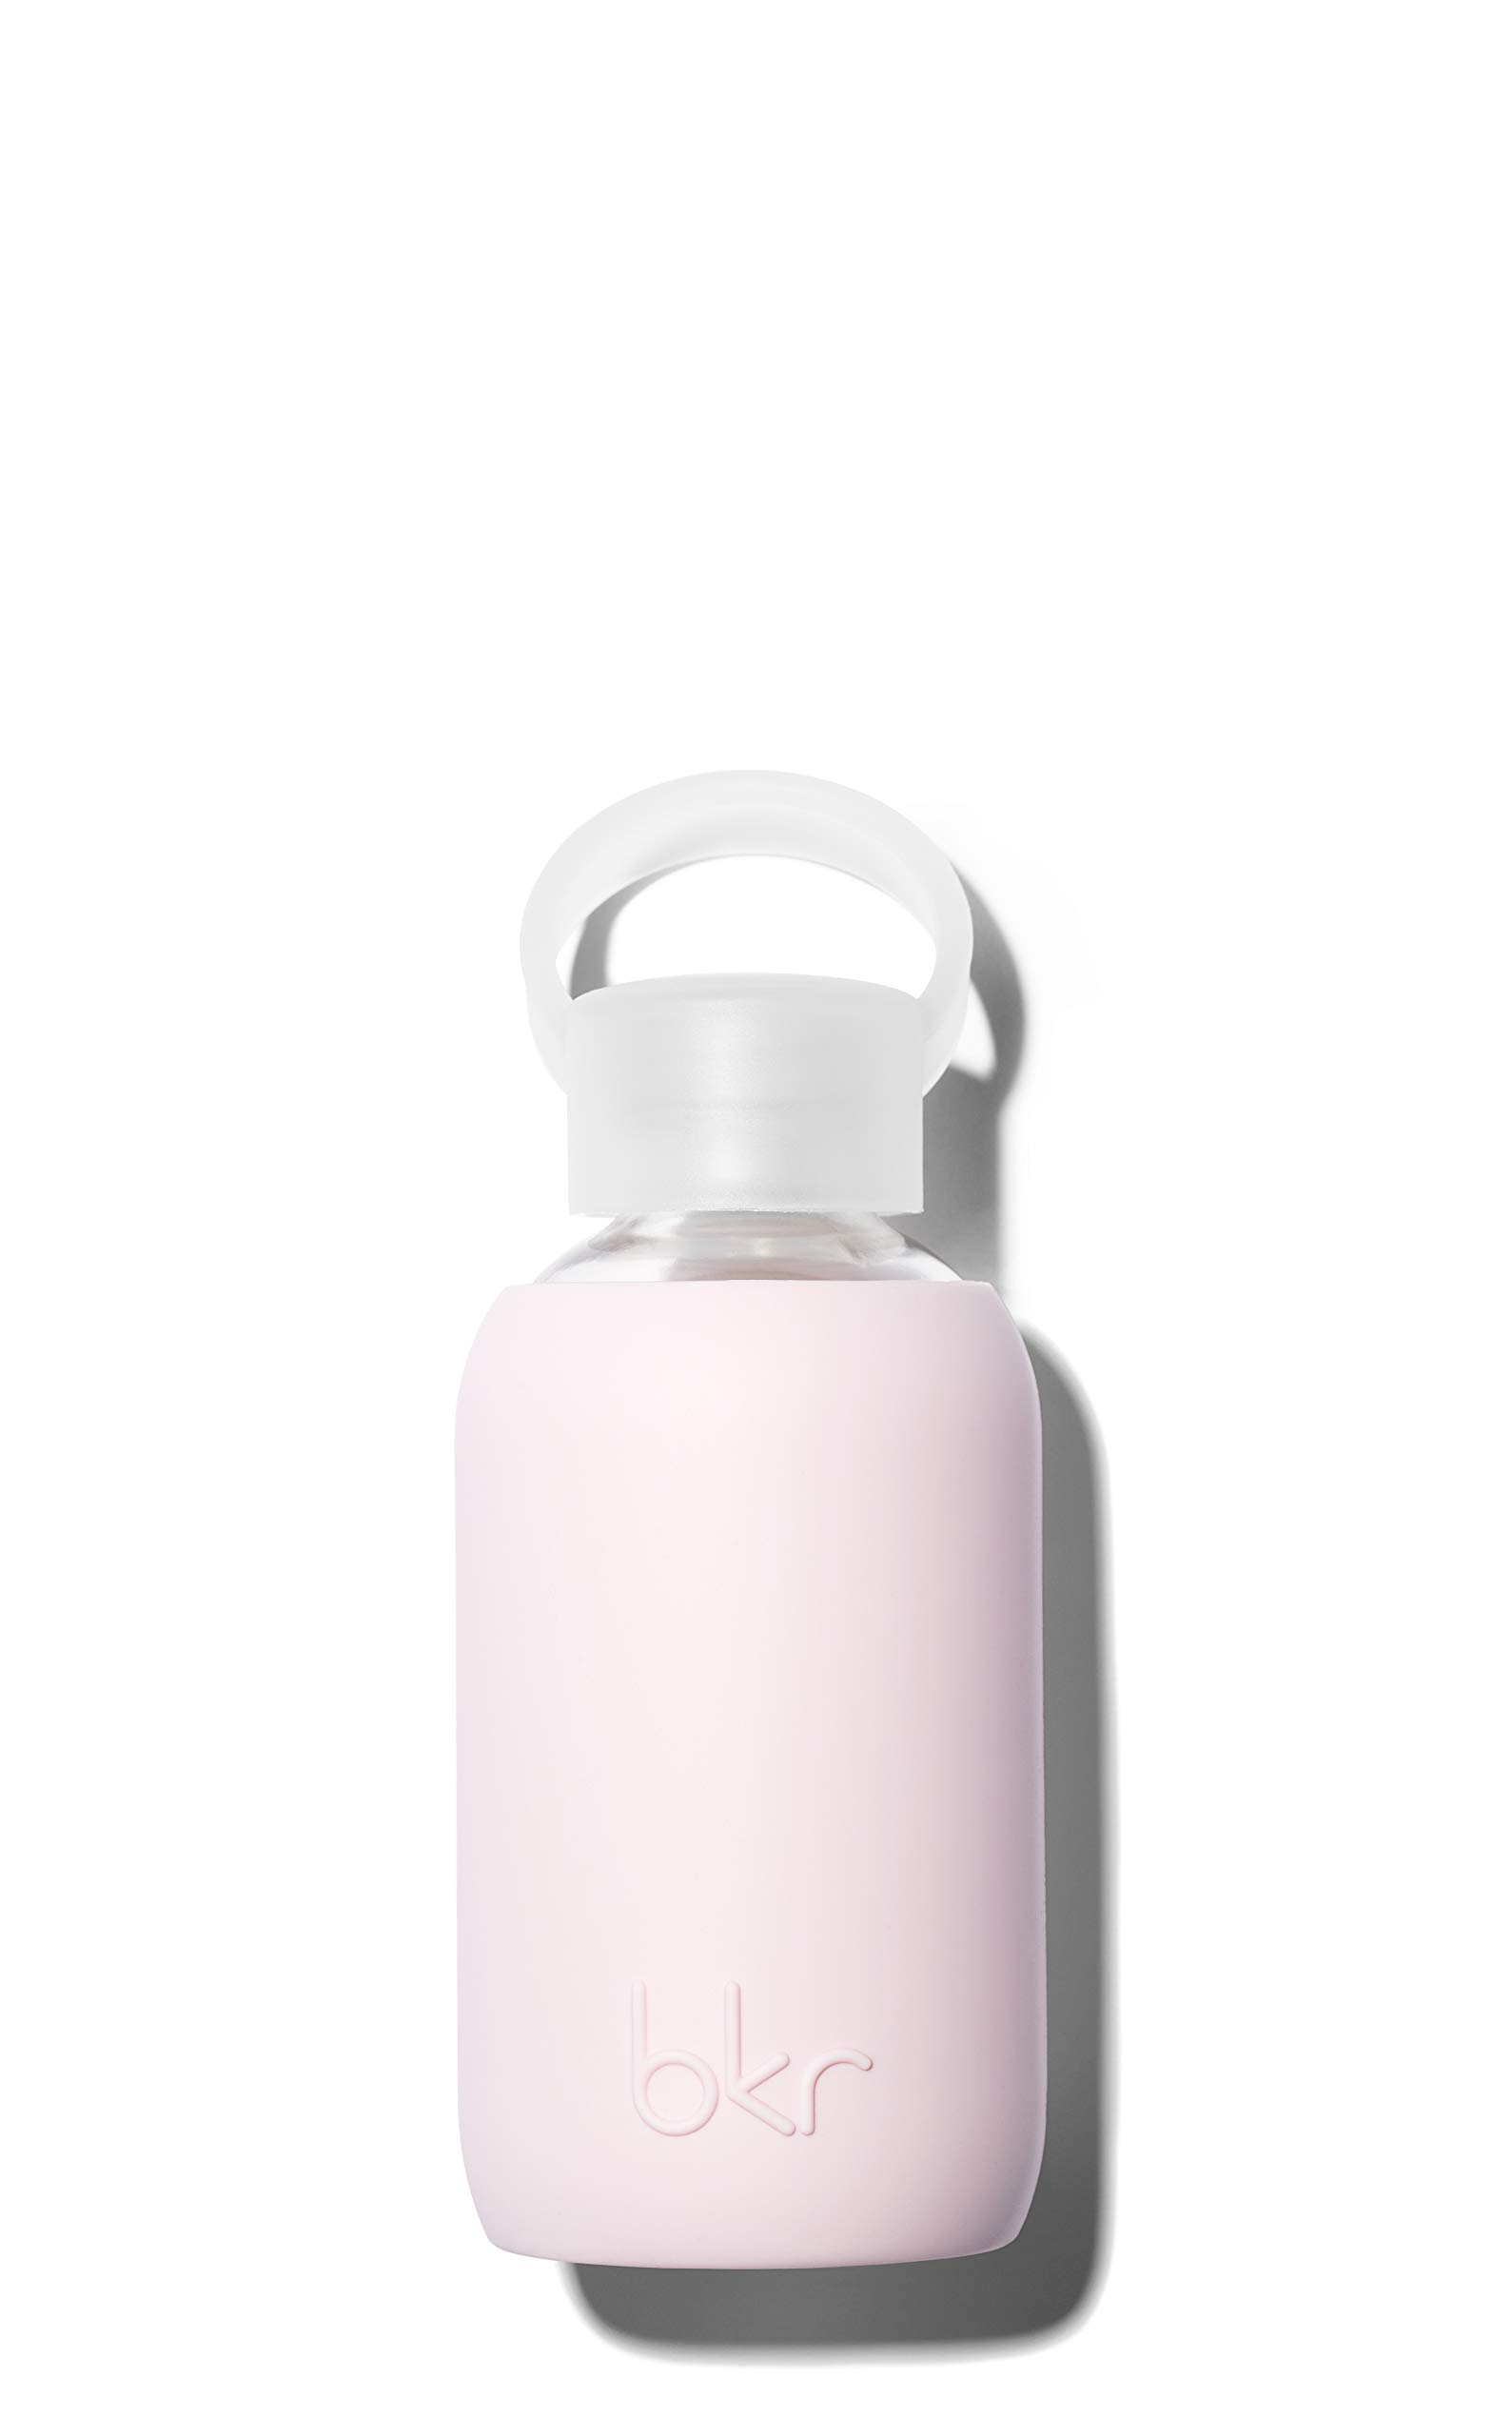 bkr Air Kiss Glass Water Bottle with Smooth Silicone Sleeve for Travel, Narrow Mouth, BPA-Free & Dishwasher Safe, Opaque Socialite Sweetheart Pink, 8 oz / 250 mL by bkr (Image #1)